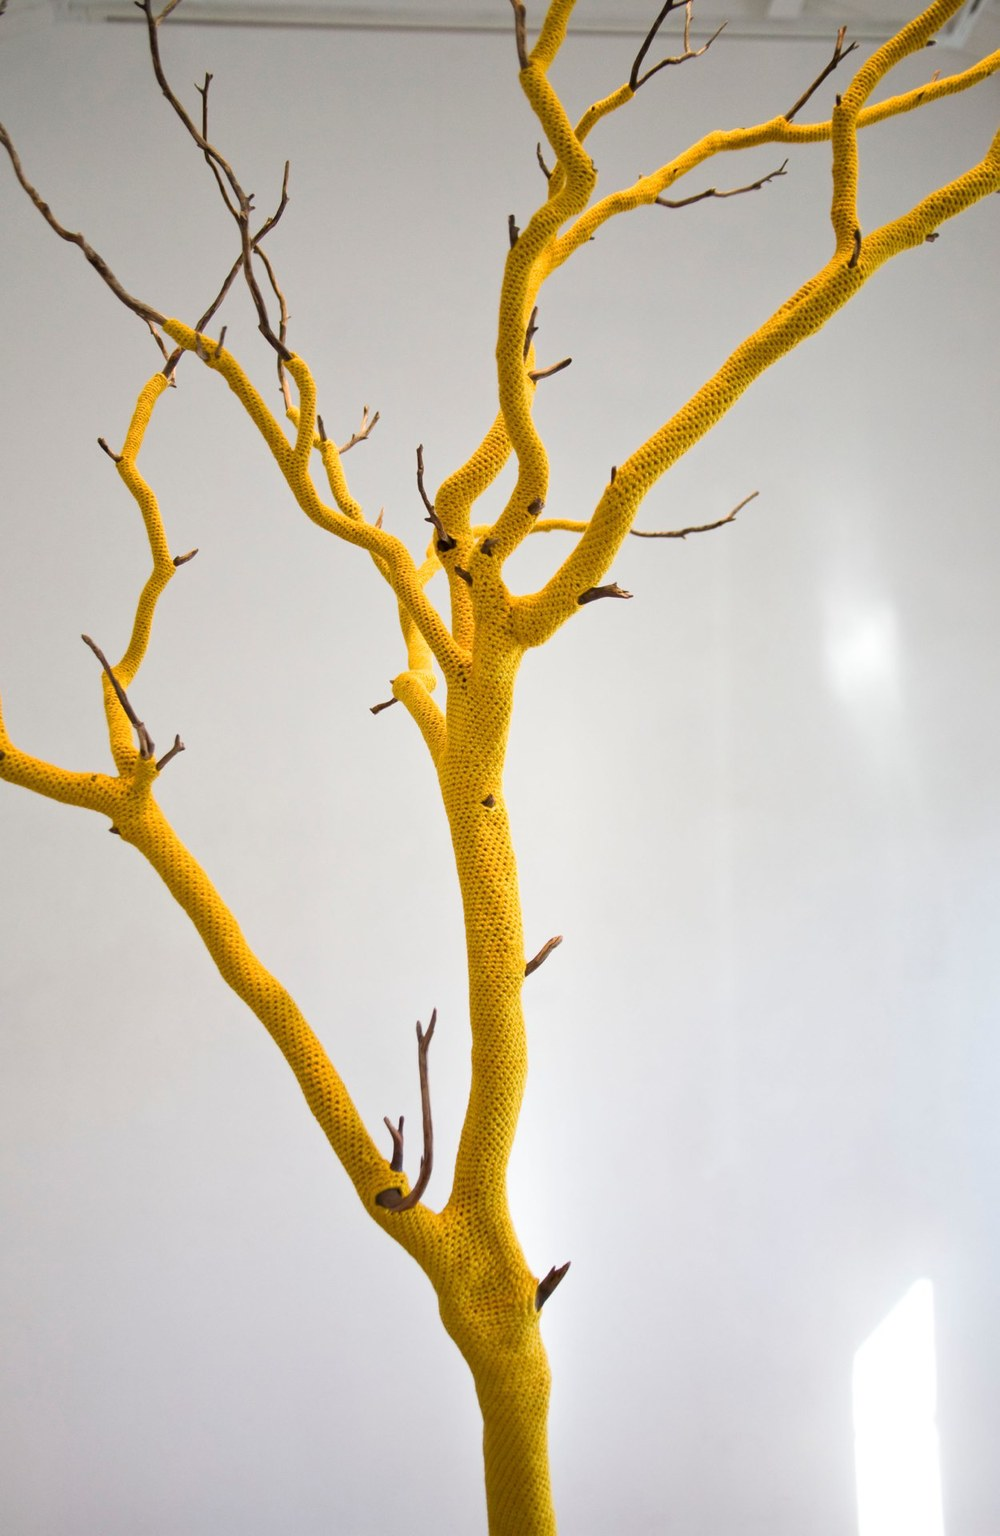 Esther Traugot Untitled (standing tree), detail, 2014 tree limb, dyed bamboo cotton yarn 90 x 54 x 27 inches